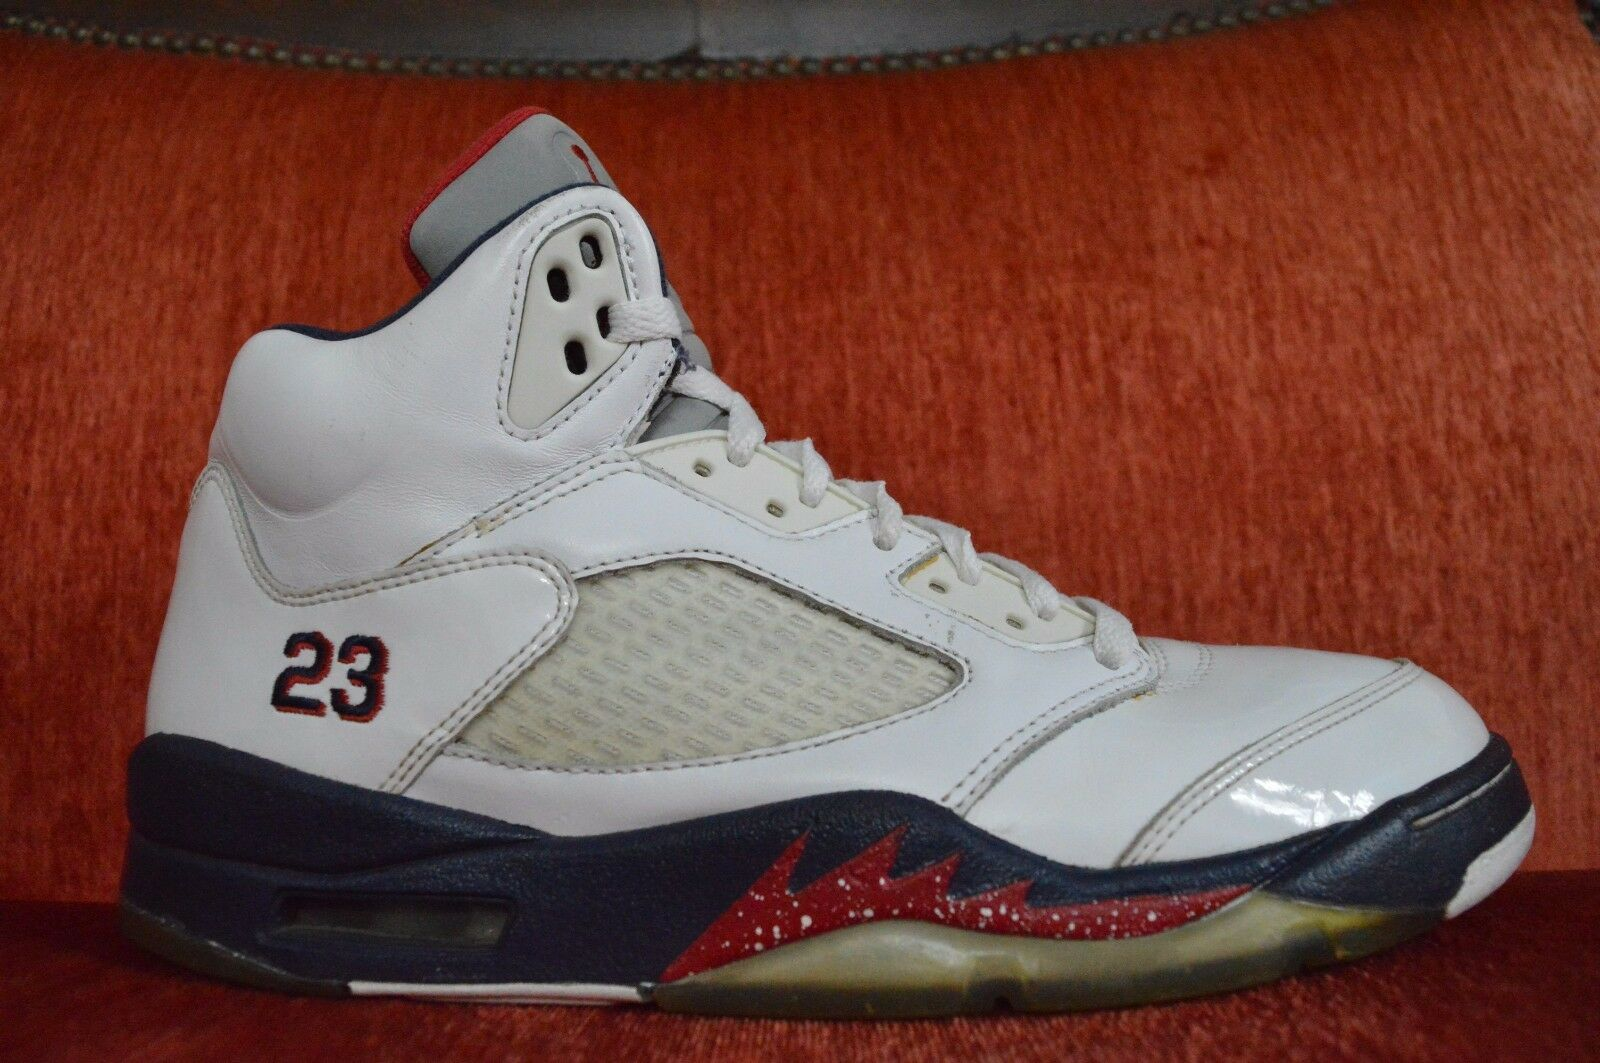 low priced b987b 540f8 Nike Air Jordan Jordan Jordan 5 retro V dia de independencia confortable el  mas popular de